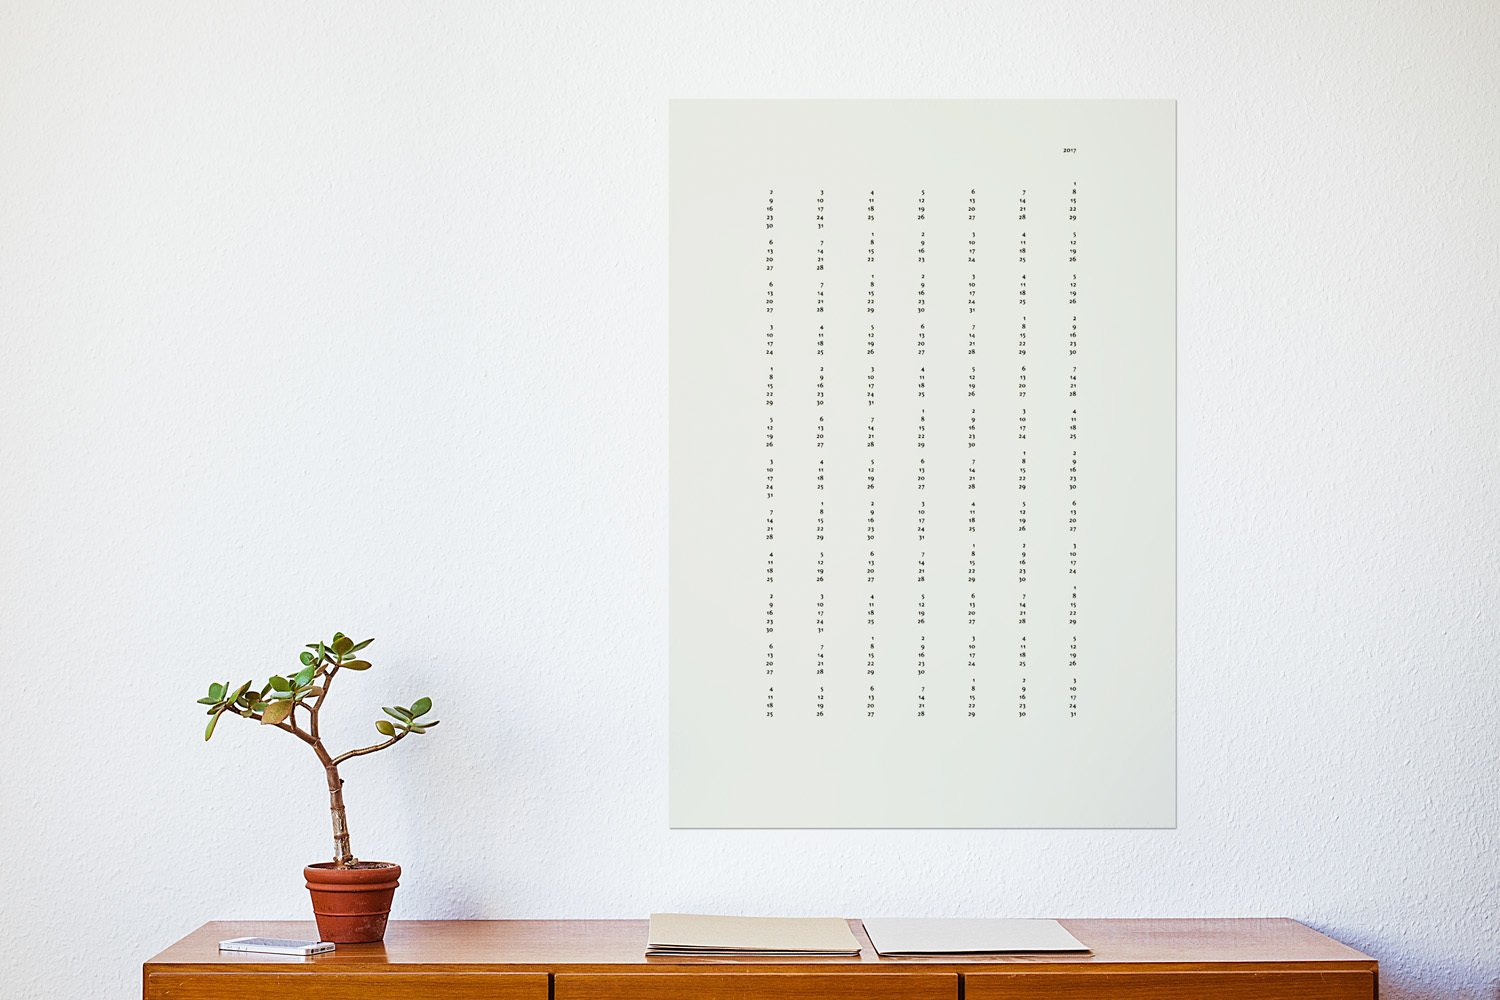 The minimalistic calendar consists of  7 columns and 12 rows.